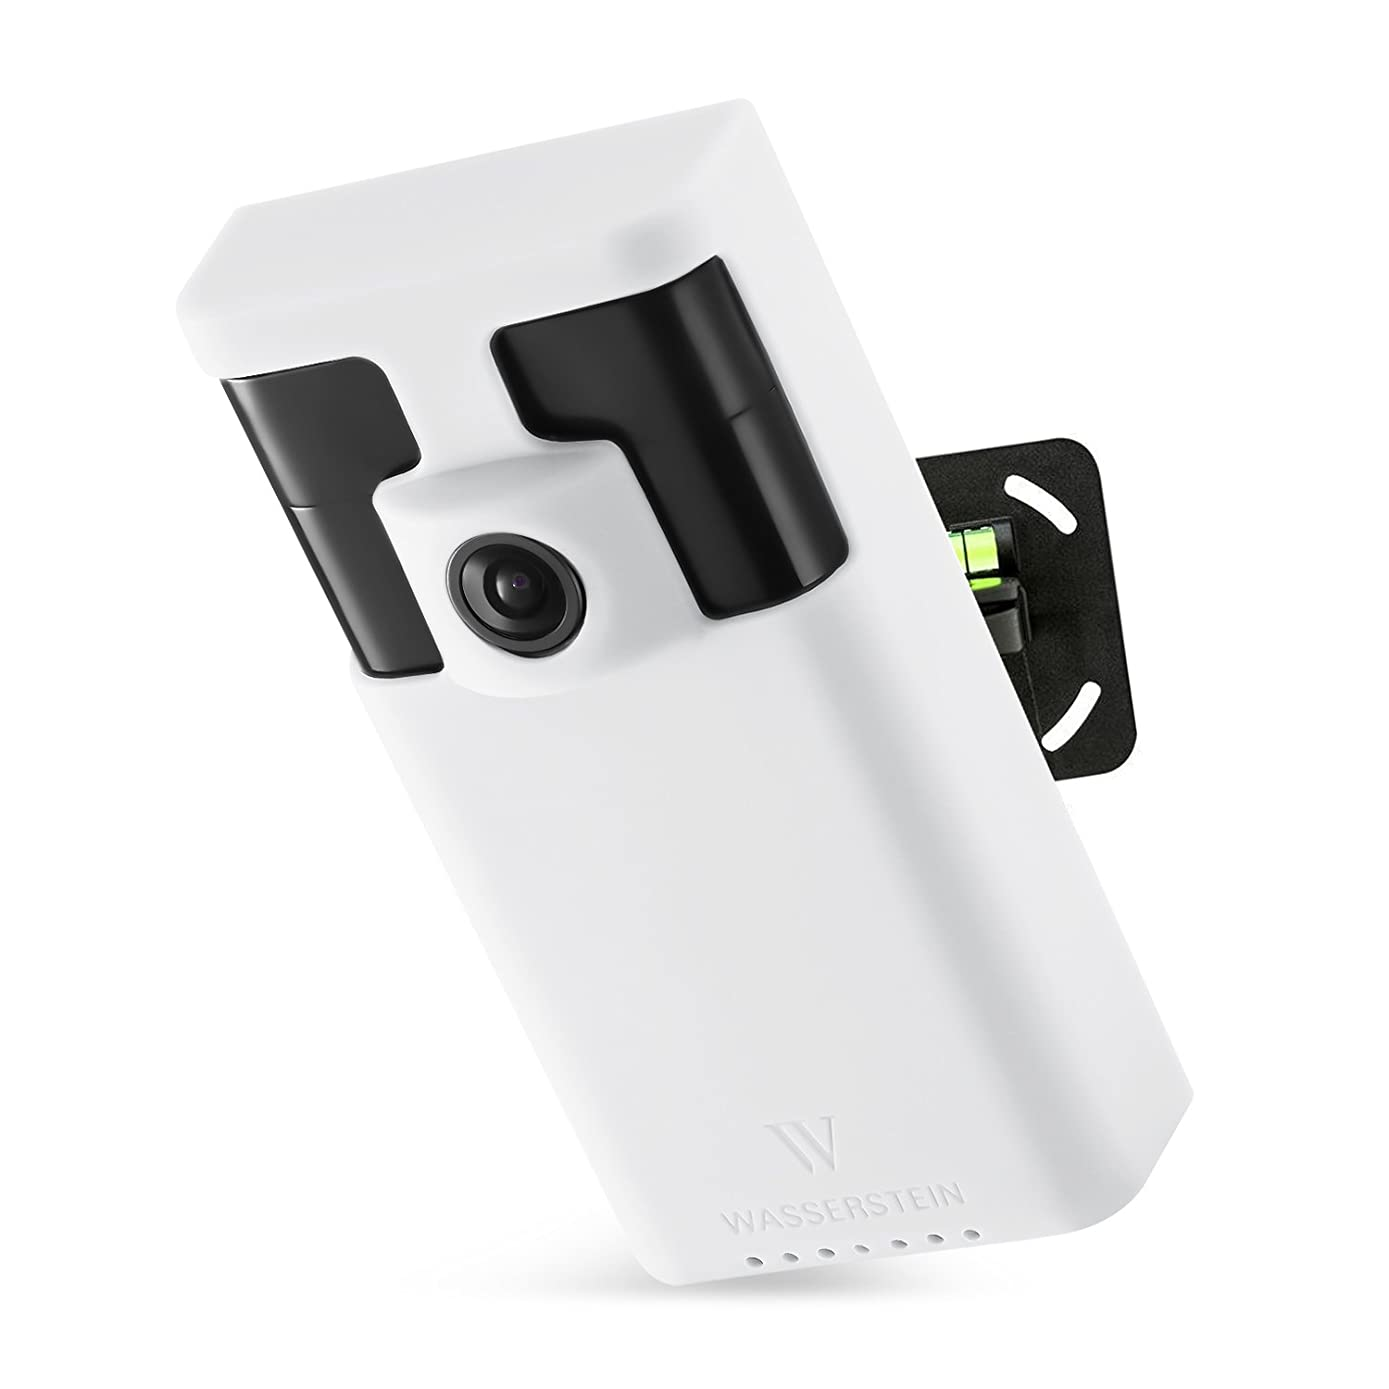 Wasserstein Weatherproof and UV light Resistant Silicone Skins for Ring Stick Up Cam Security Camera with Extra Layer of Protection for your Ring camera (White) 4897080222943